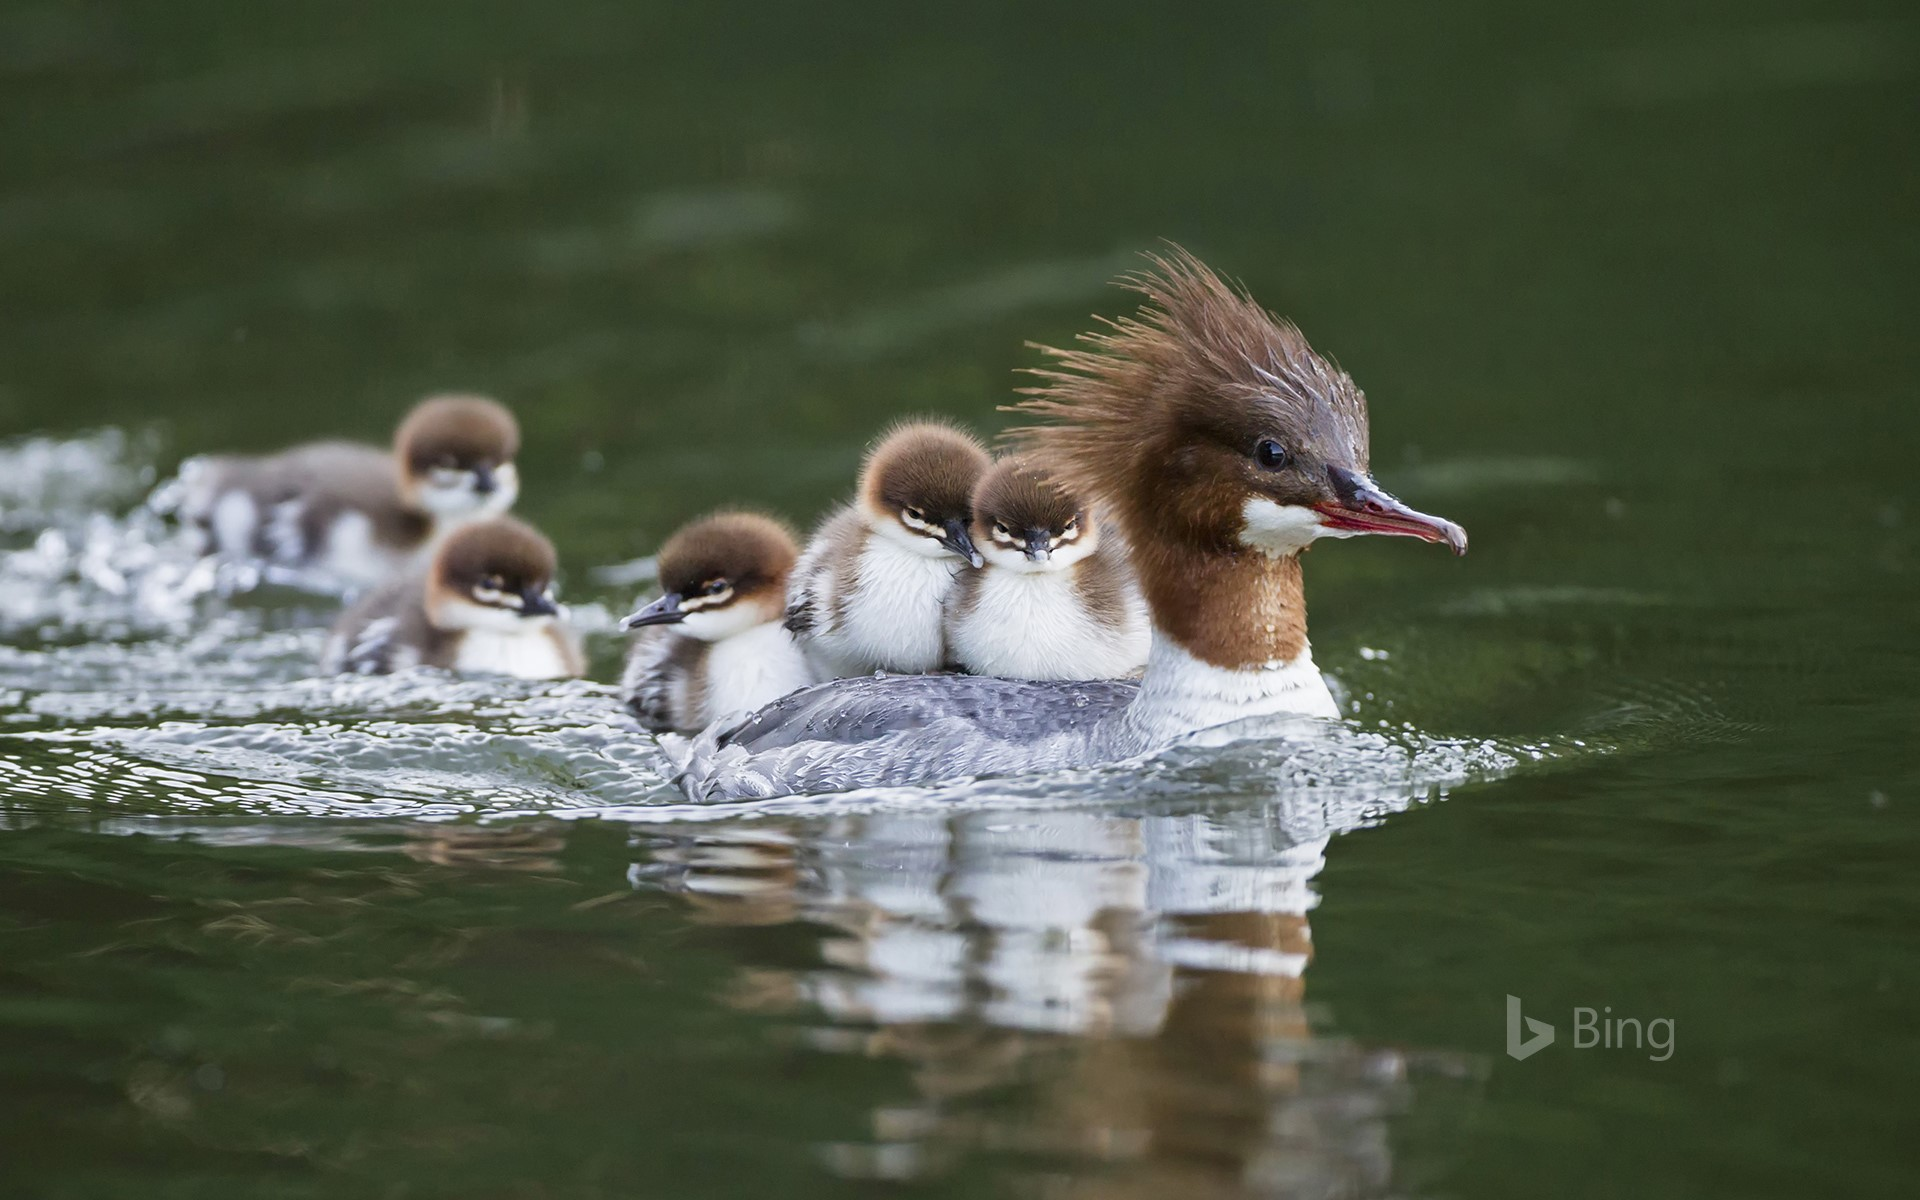 Goosander with chicks on her back, Bavaria, Germany